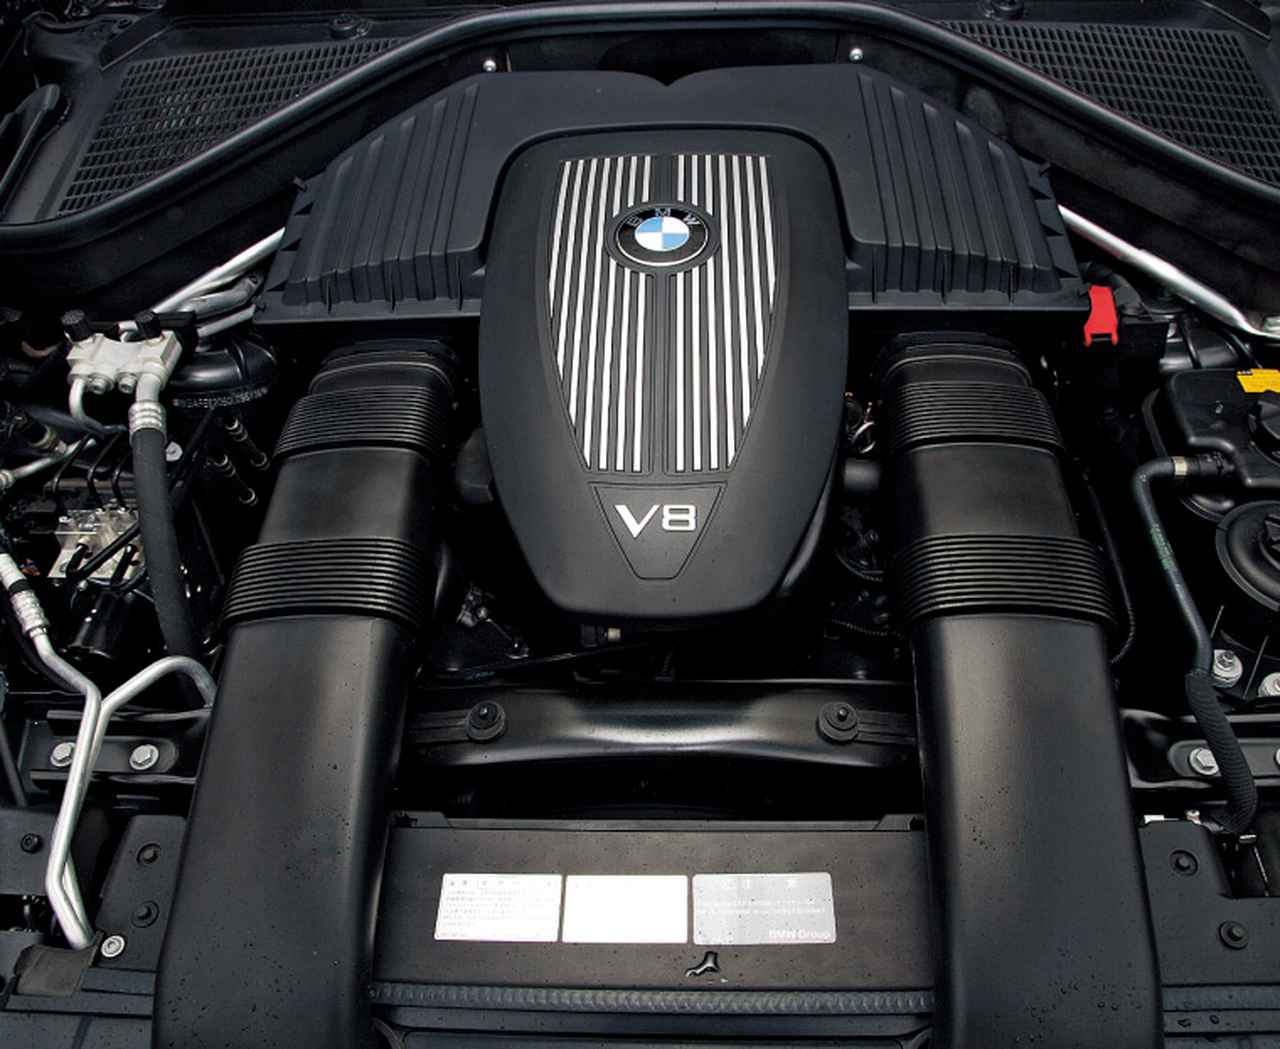 Images : 9番目の画像 - BMW X5 - LAWRENCE - Motorcycle x Cars + α = Your Life.